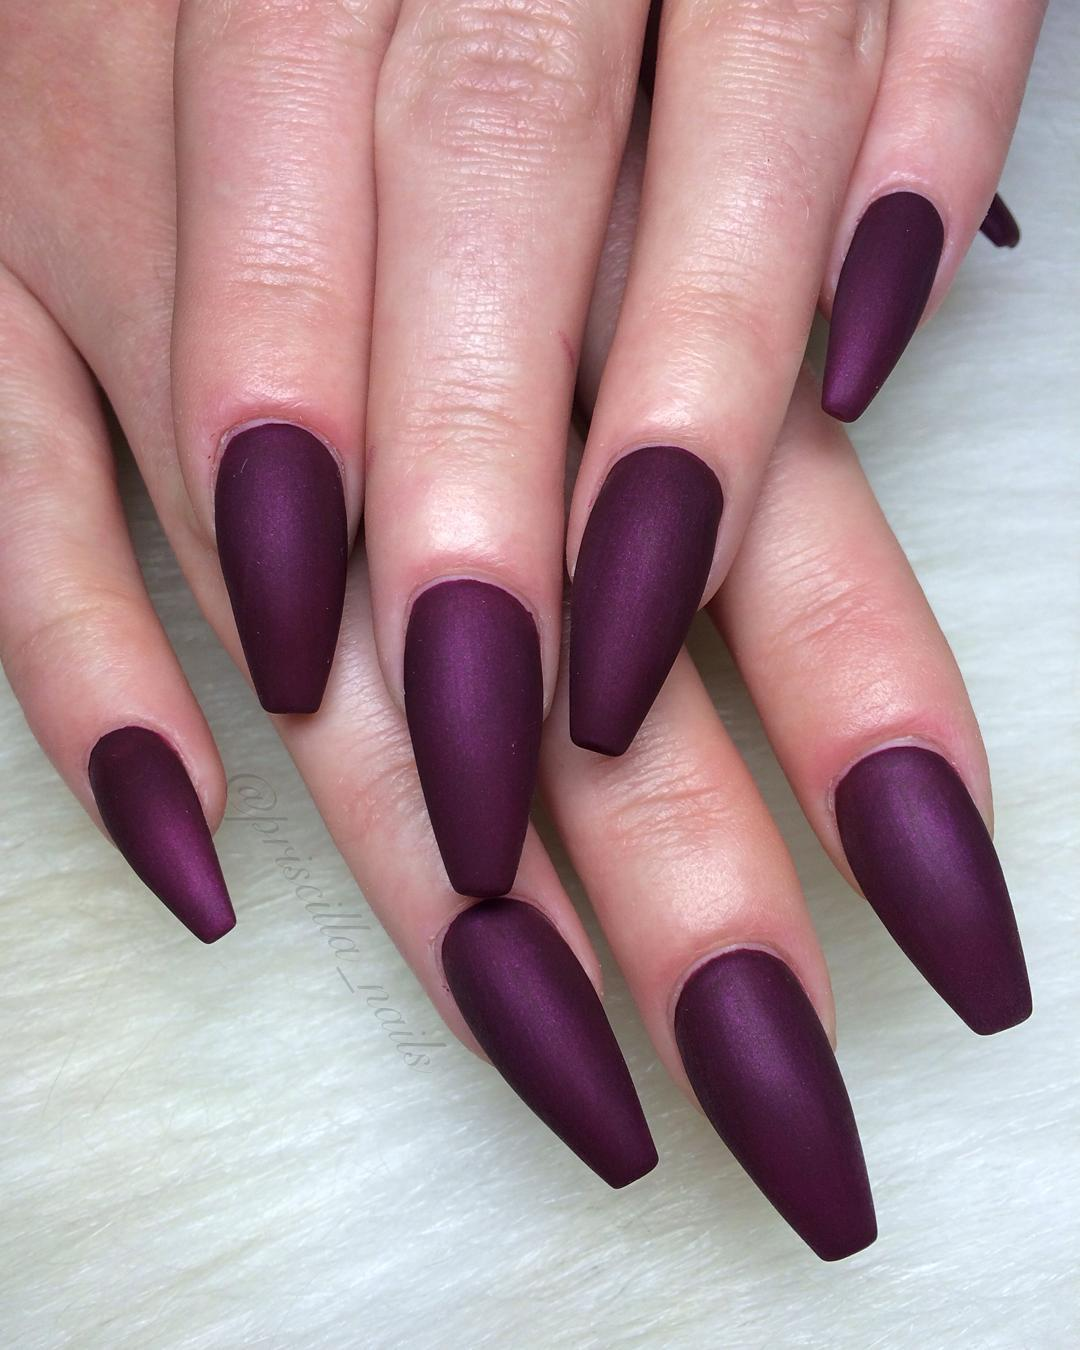 matte-manicures-youll-be-obsessed-with-01